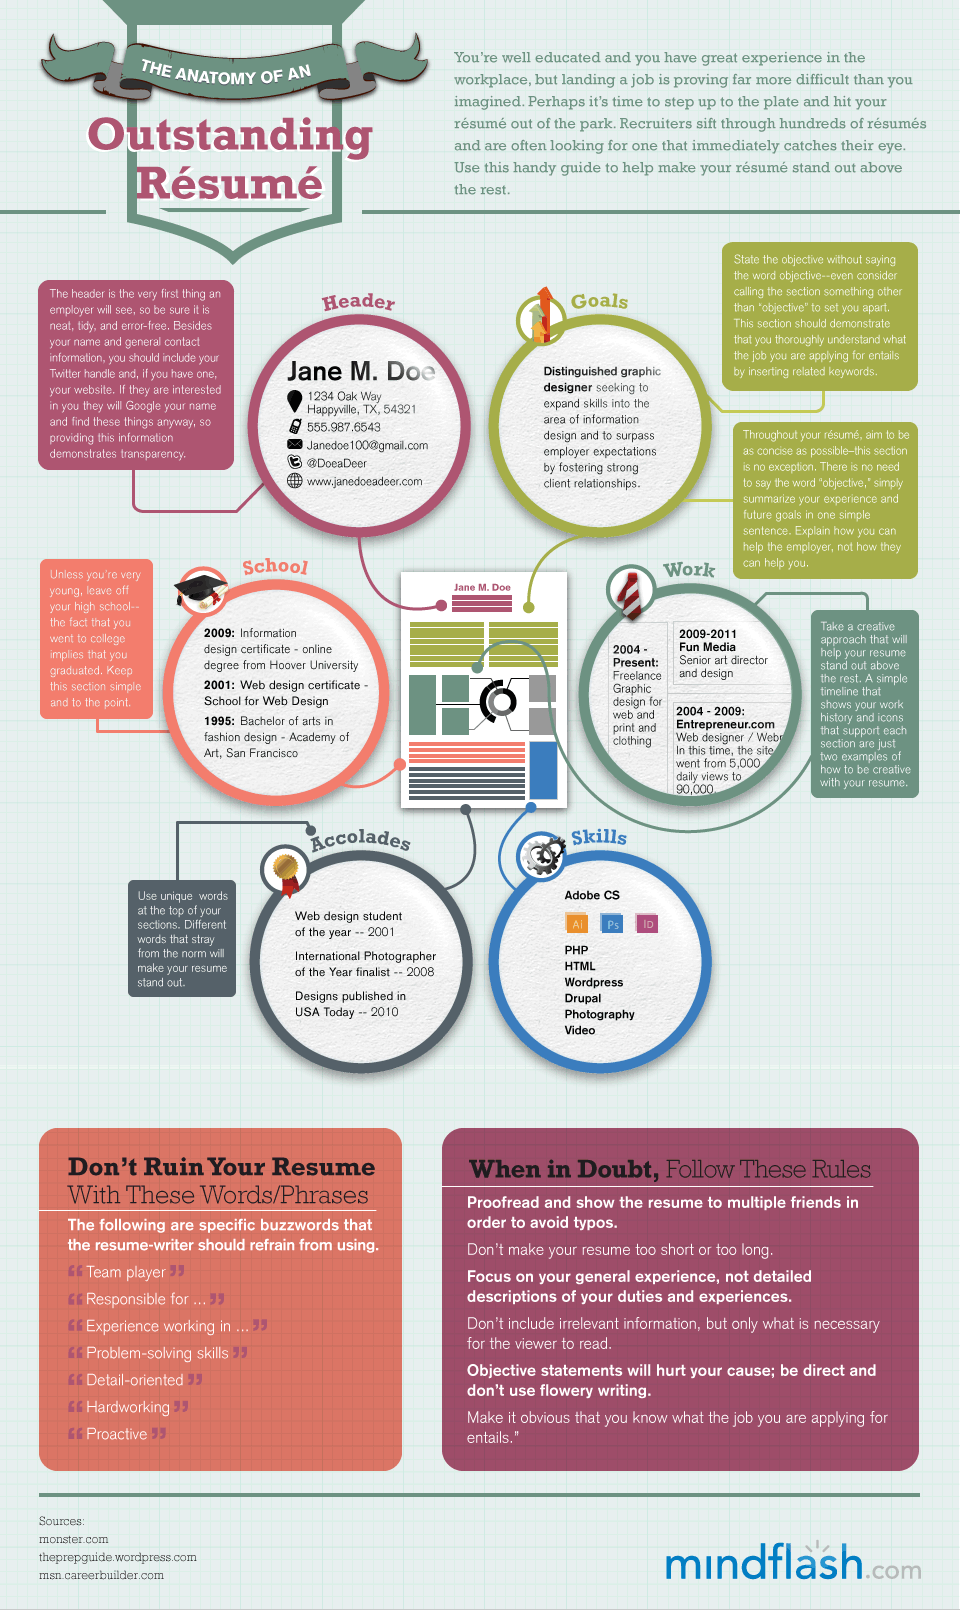 Infographic: Anatomy of an Outstanding Resume - what makes a resume ...